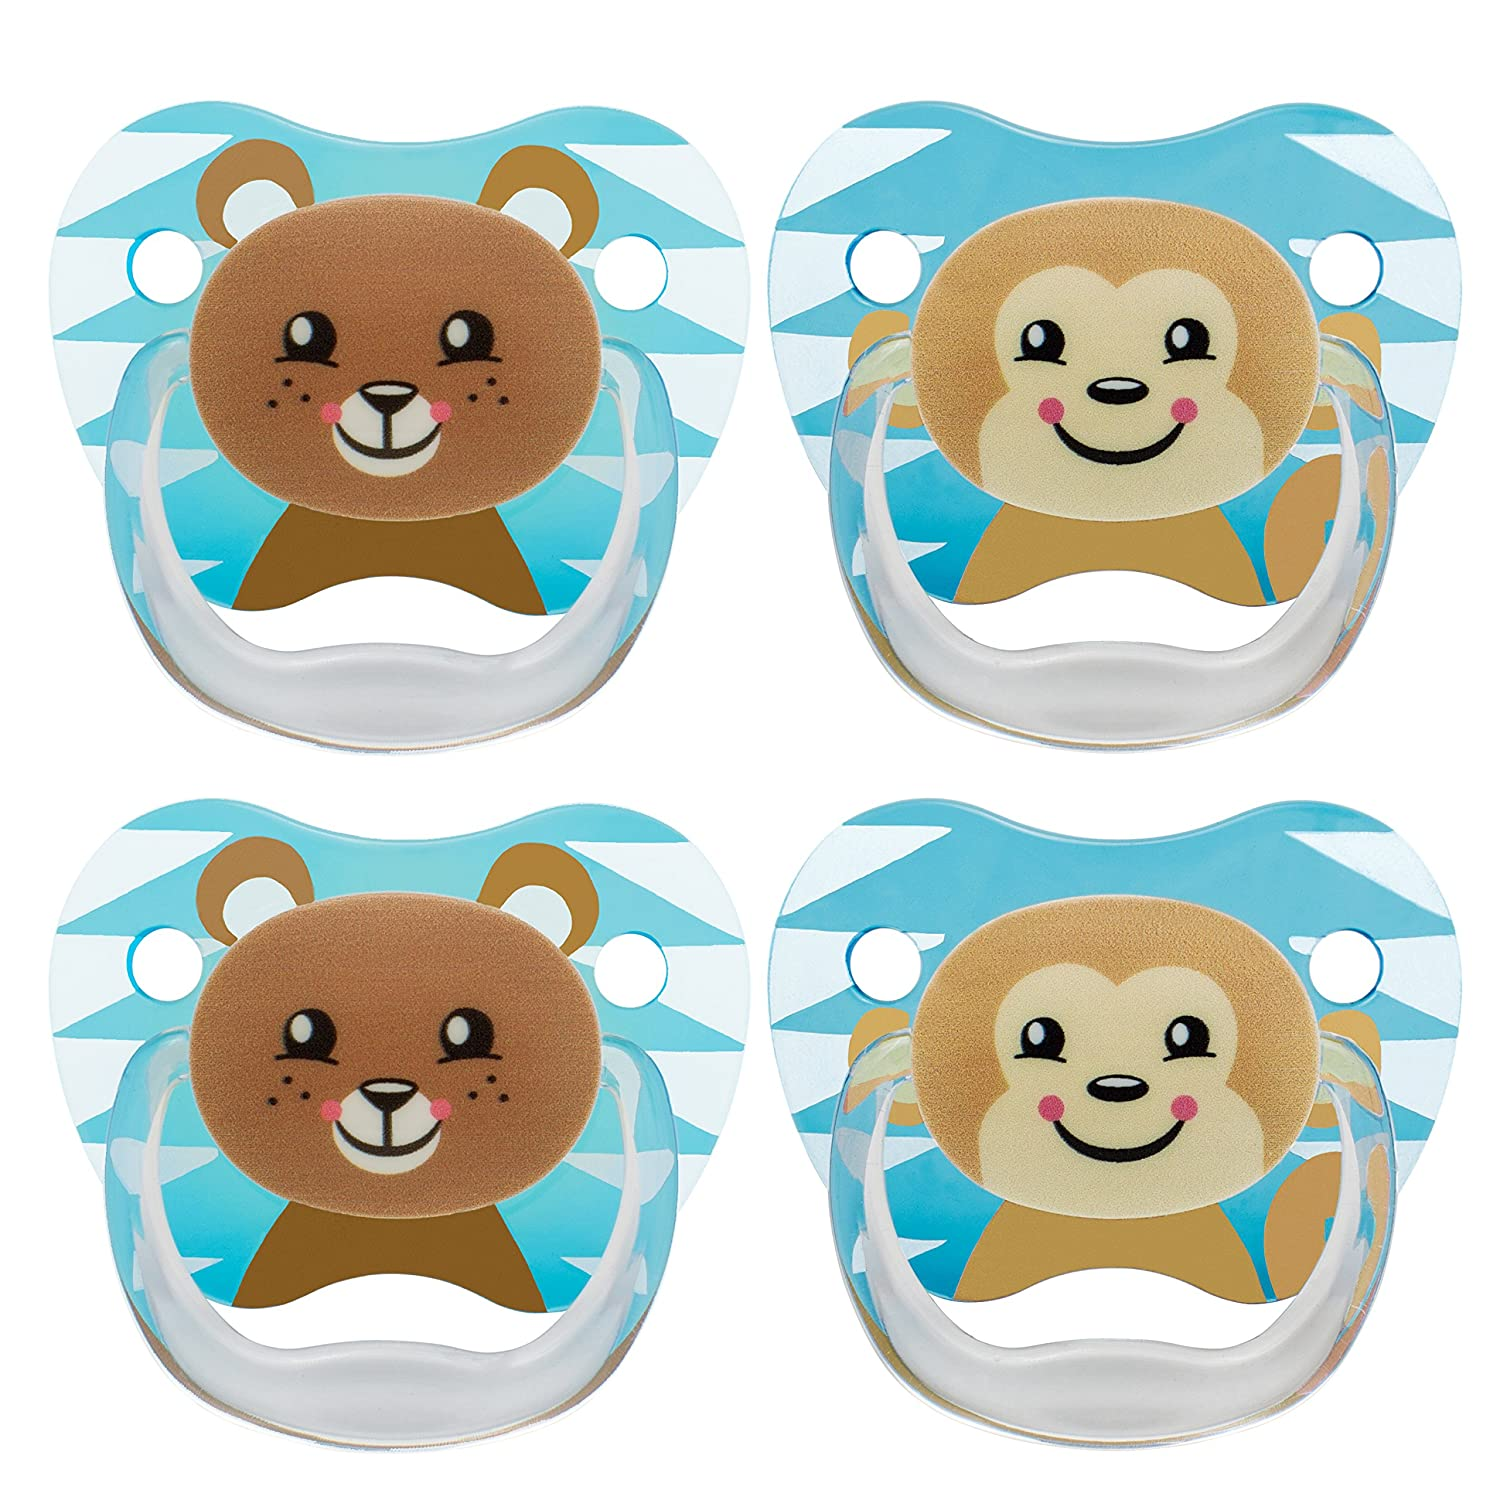 Dr. Browns Classic Pacifier, 0-6m, Animal Faces Blue, 4 Count